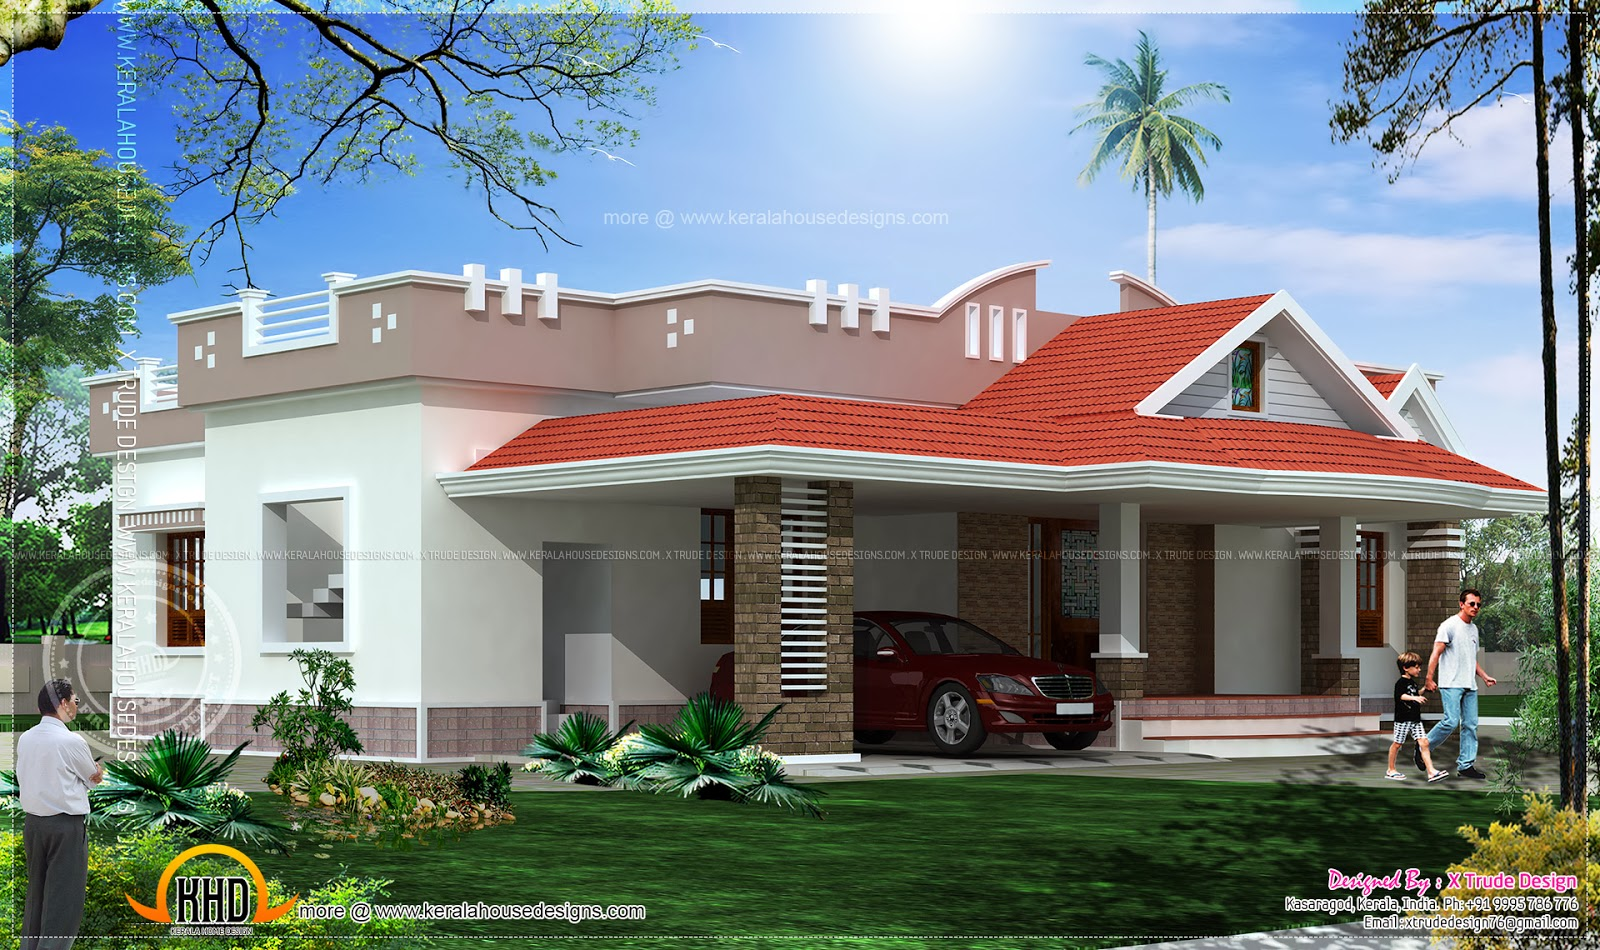 Single storied 2 bedroom house elevation kerala home for Single floor 4 bedroom house plans kerala